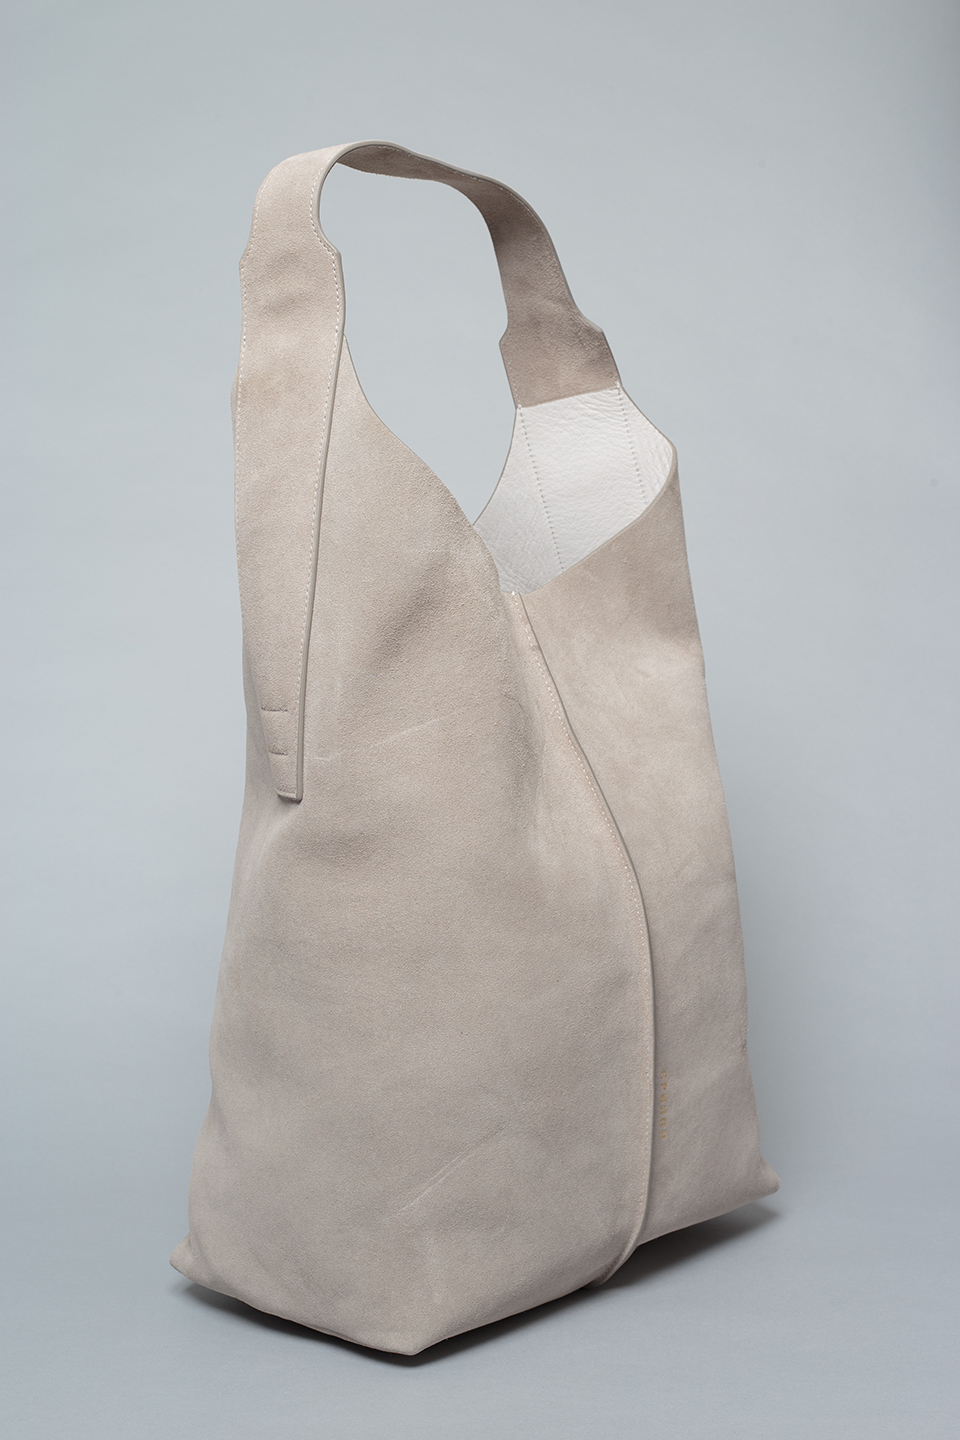 CPH Bag 1 crosta light grey - alternative 2